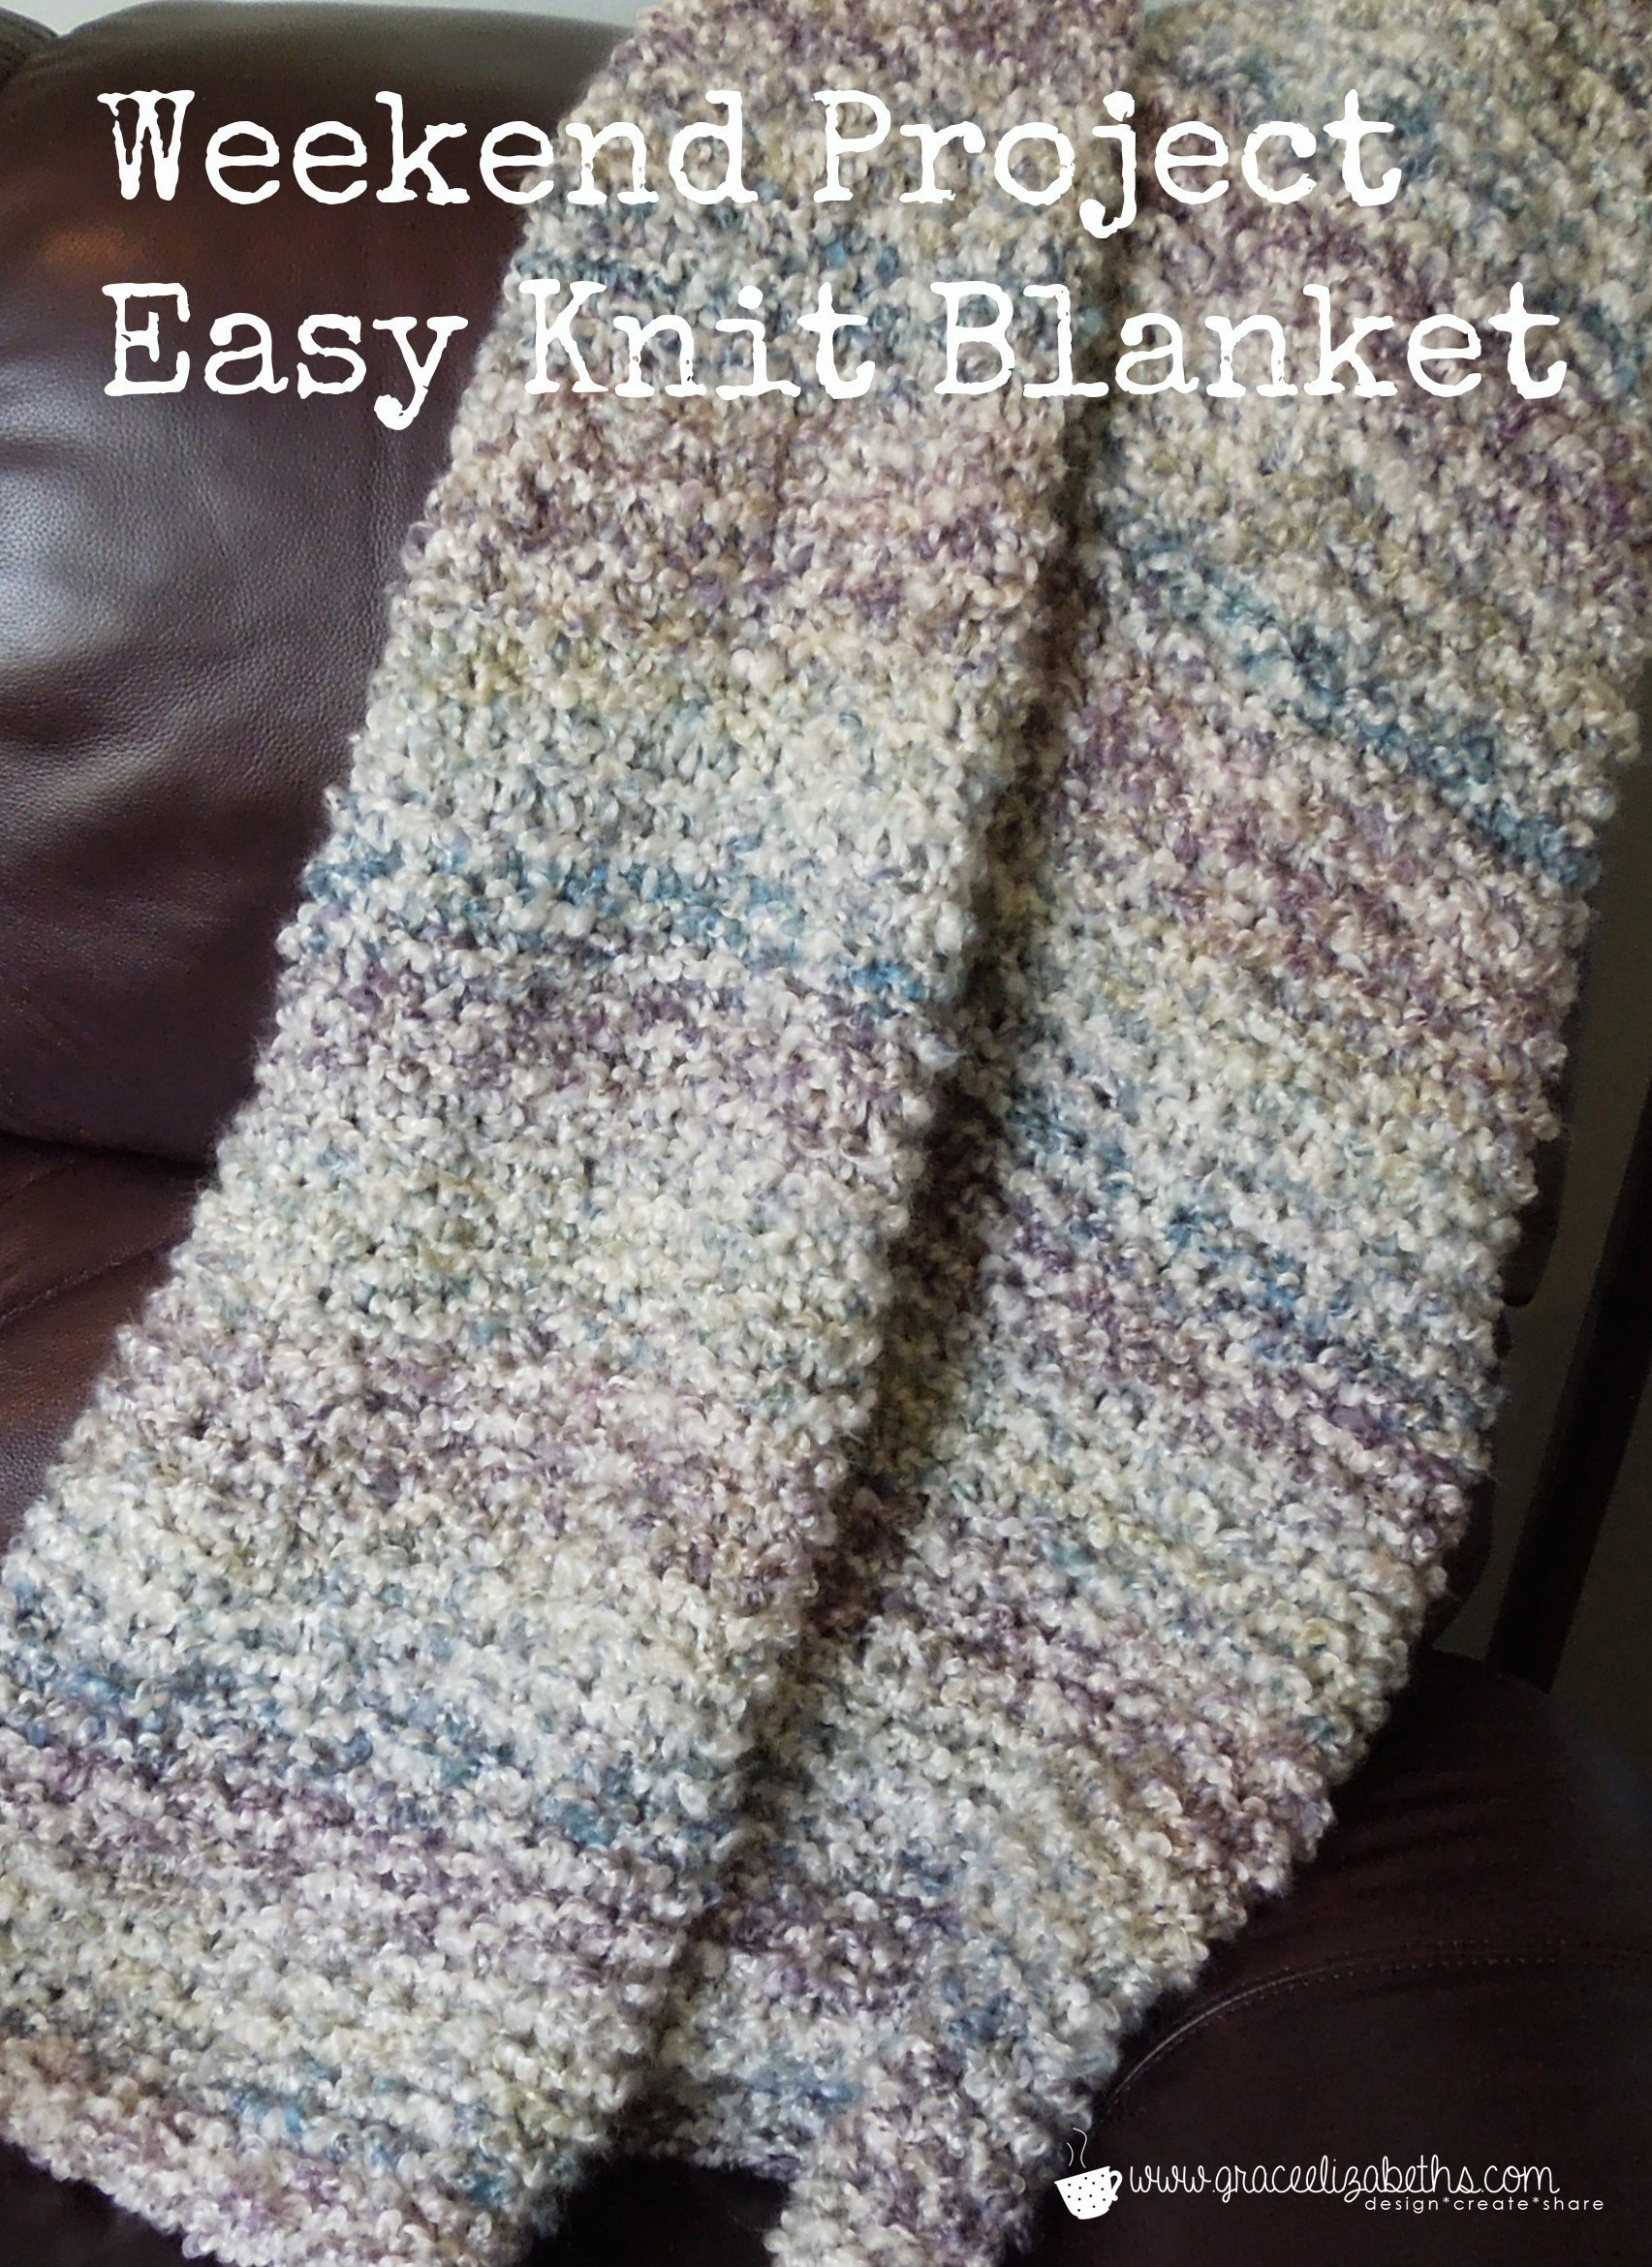 Free Knitting Afghan Patterns For Beginners Easy Knit Afghan Patterns Free Knitting Ba Pattern Litlestuff